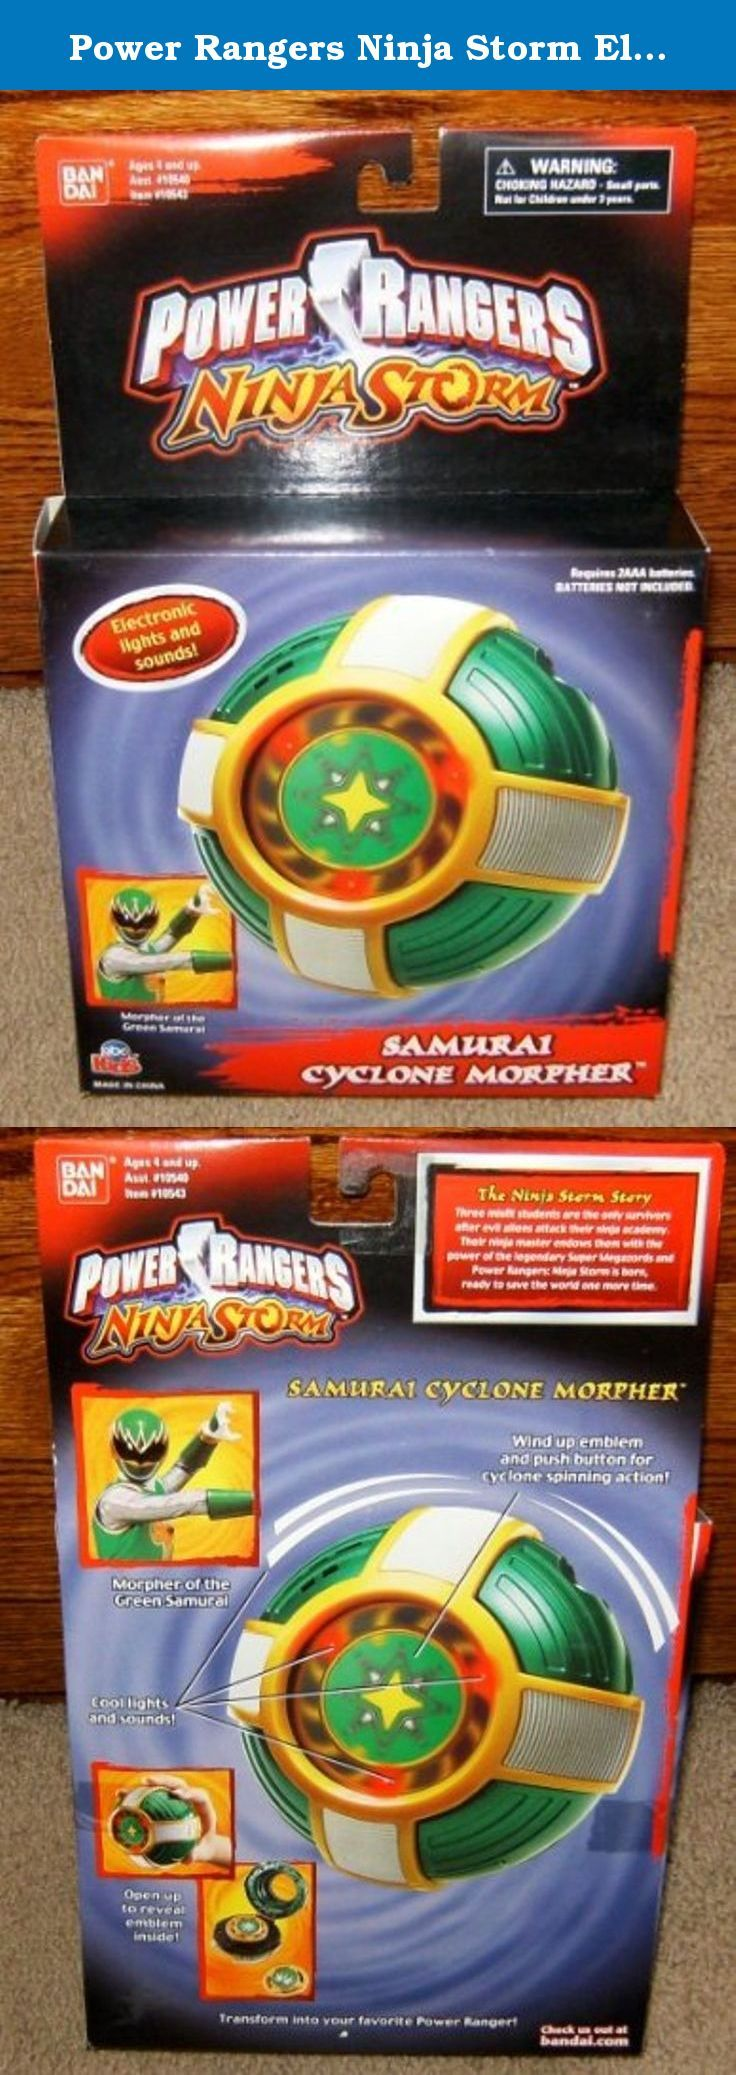 "Power Rangers Ninja Storm Electronic Samurai Cyclone Morpher. Produced by Ban Dai in 2003. Very Rare. Approximate size of unopened packaging is 12"" x 7.5"" x 2"". Requires 2 AAA batteries (not included)."